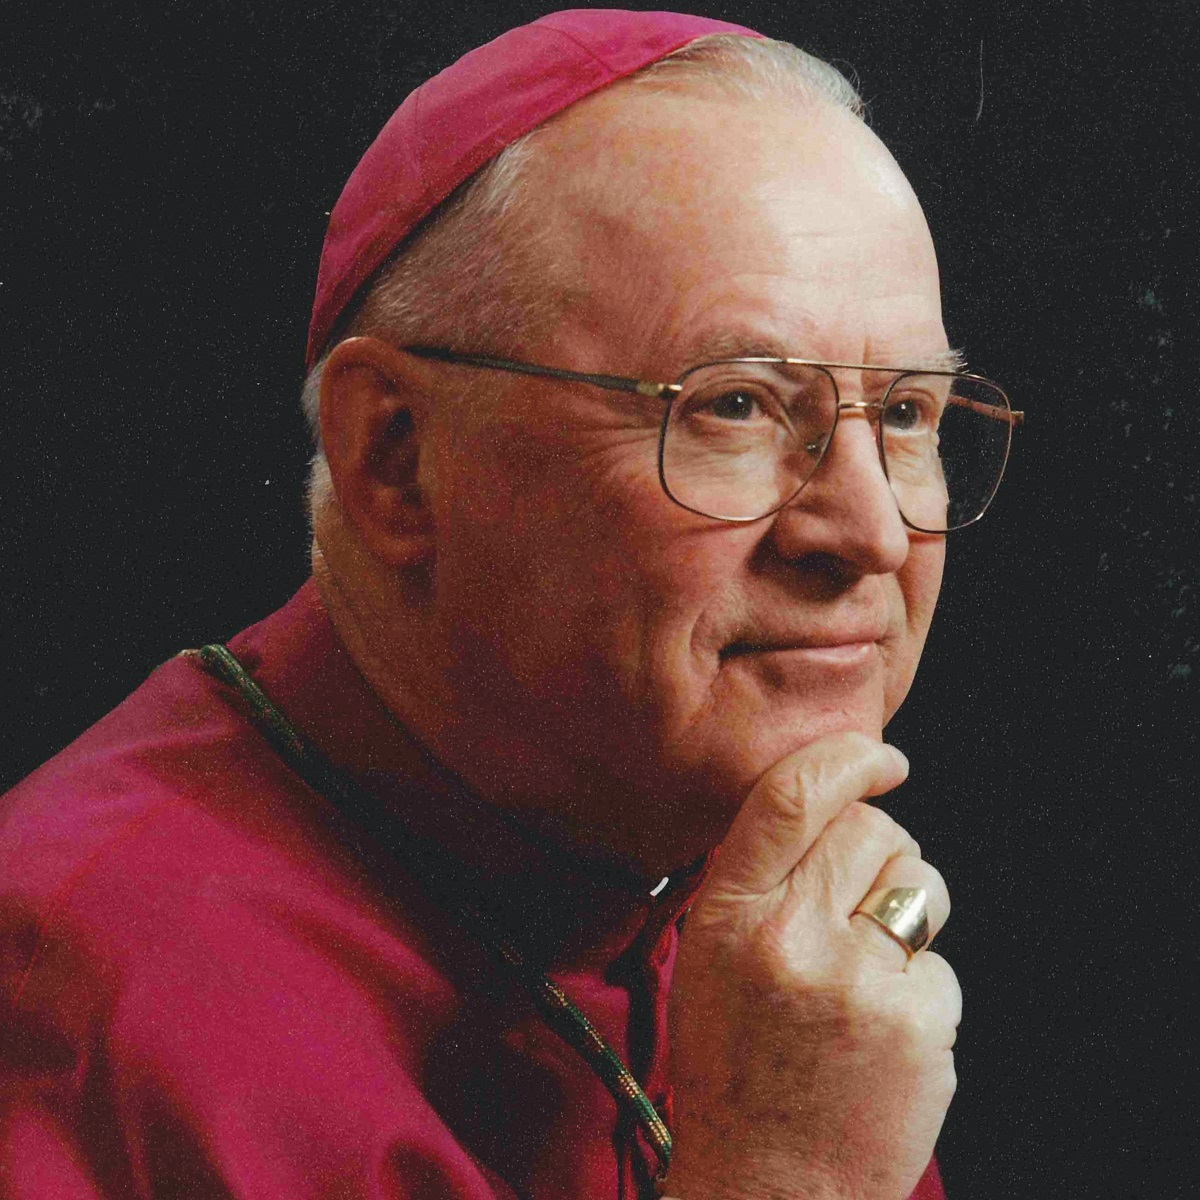 Bishop John Sherlock died Monday, August 12, 2019 at the age of 93.